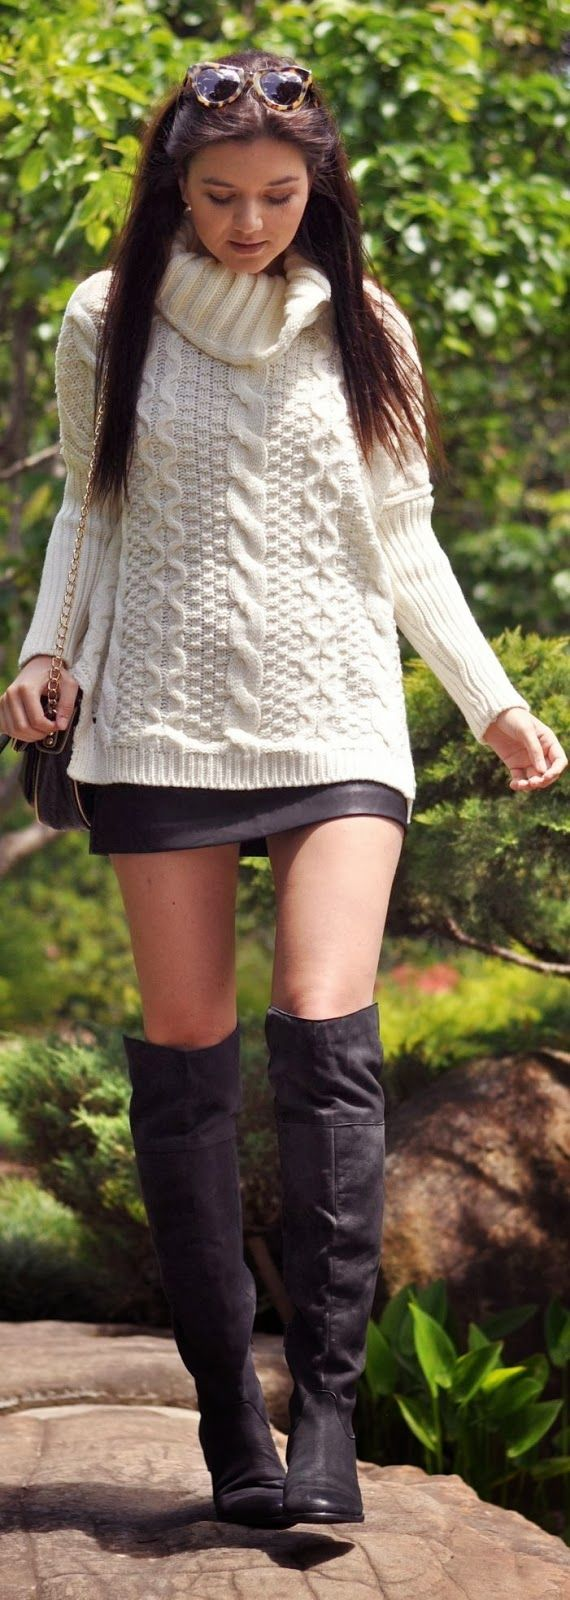 193 best Outfit ideas images on Pinterest | Hairstyles, Skirts and ...